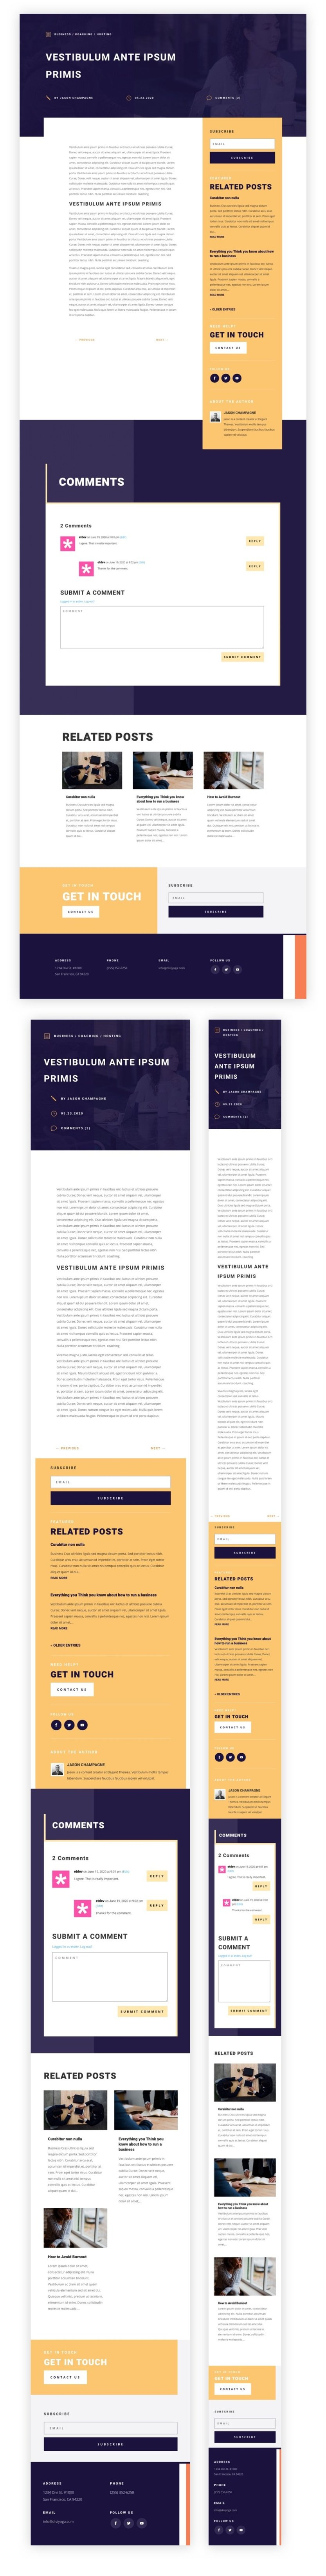 blog post template for Divi's PR Firm Layout Pack